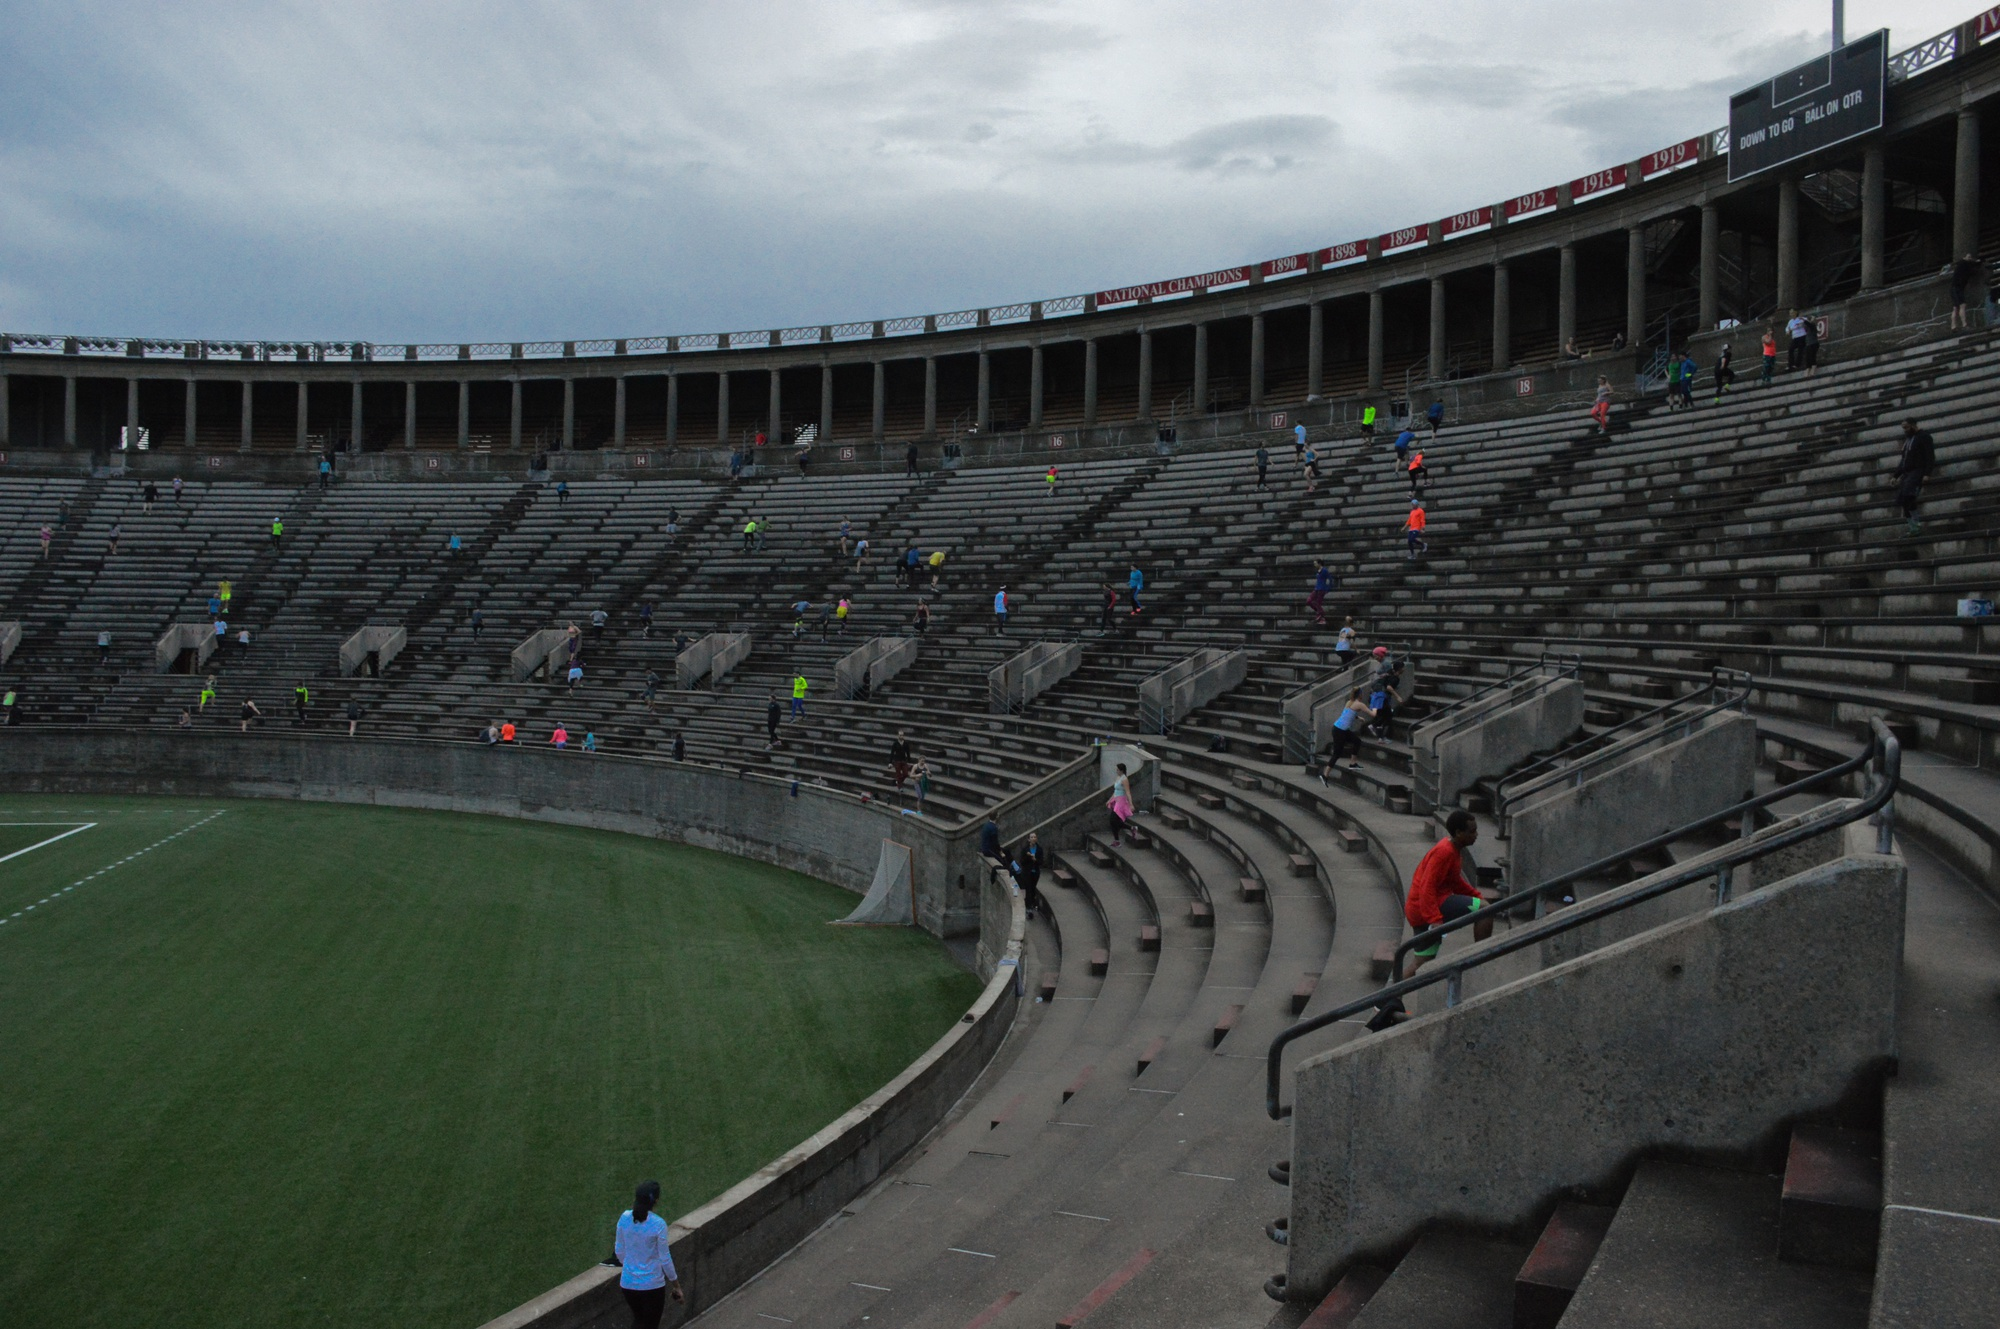 On Wednesday mornings, figures in brightly-colored athletic gear can be seen trekking up and down the steps of Harvard Stadium.  Participants in the November Project aim to traverse the stadium by climbing the steps of each of its thirty-seven sections in turn.